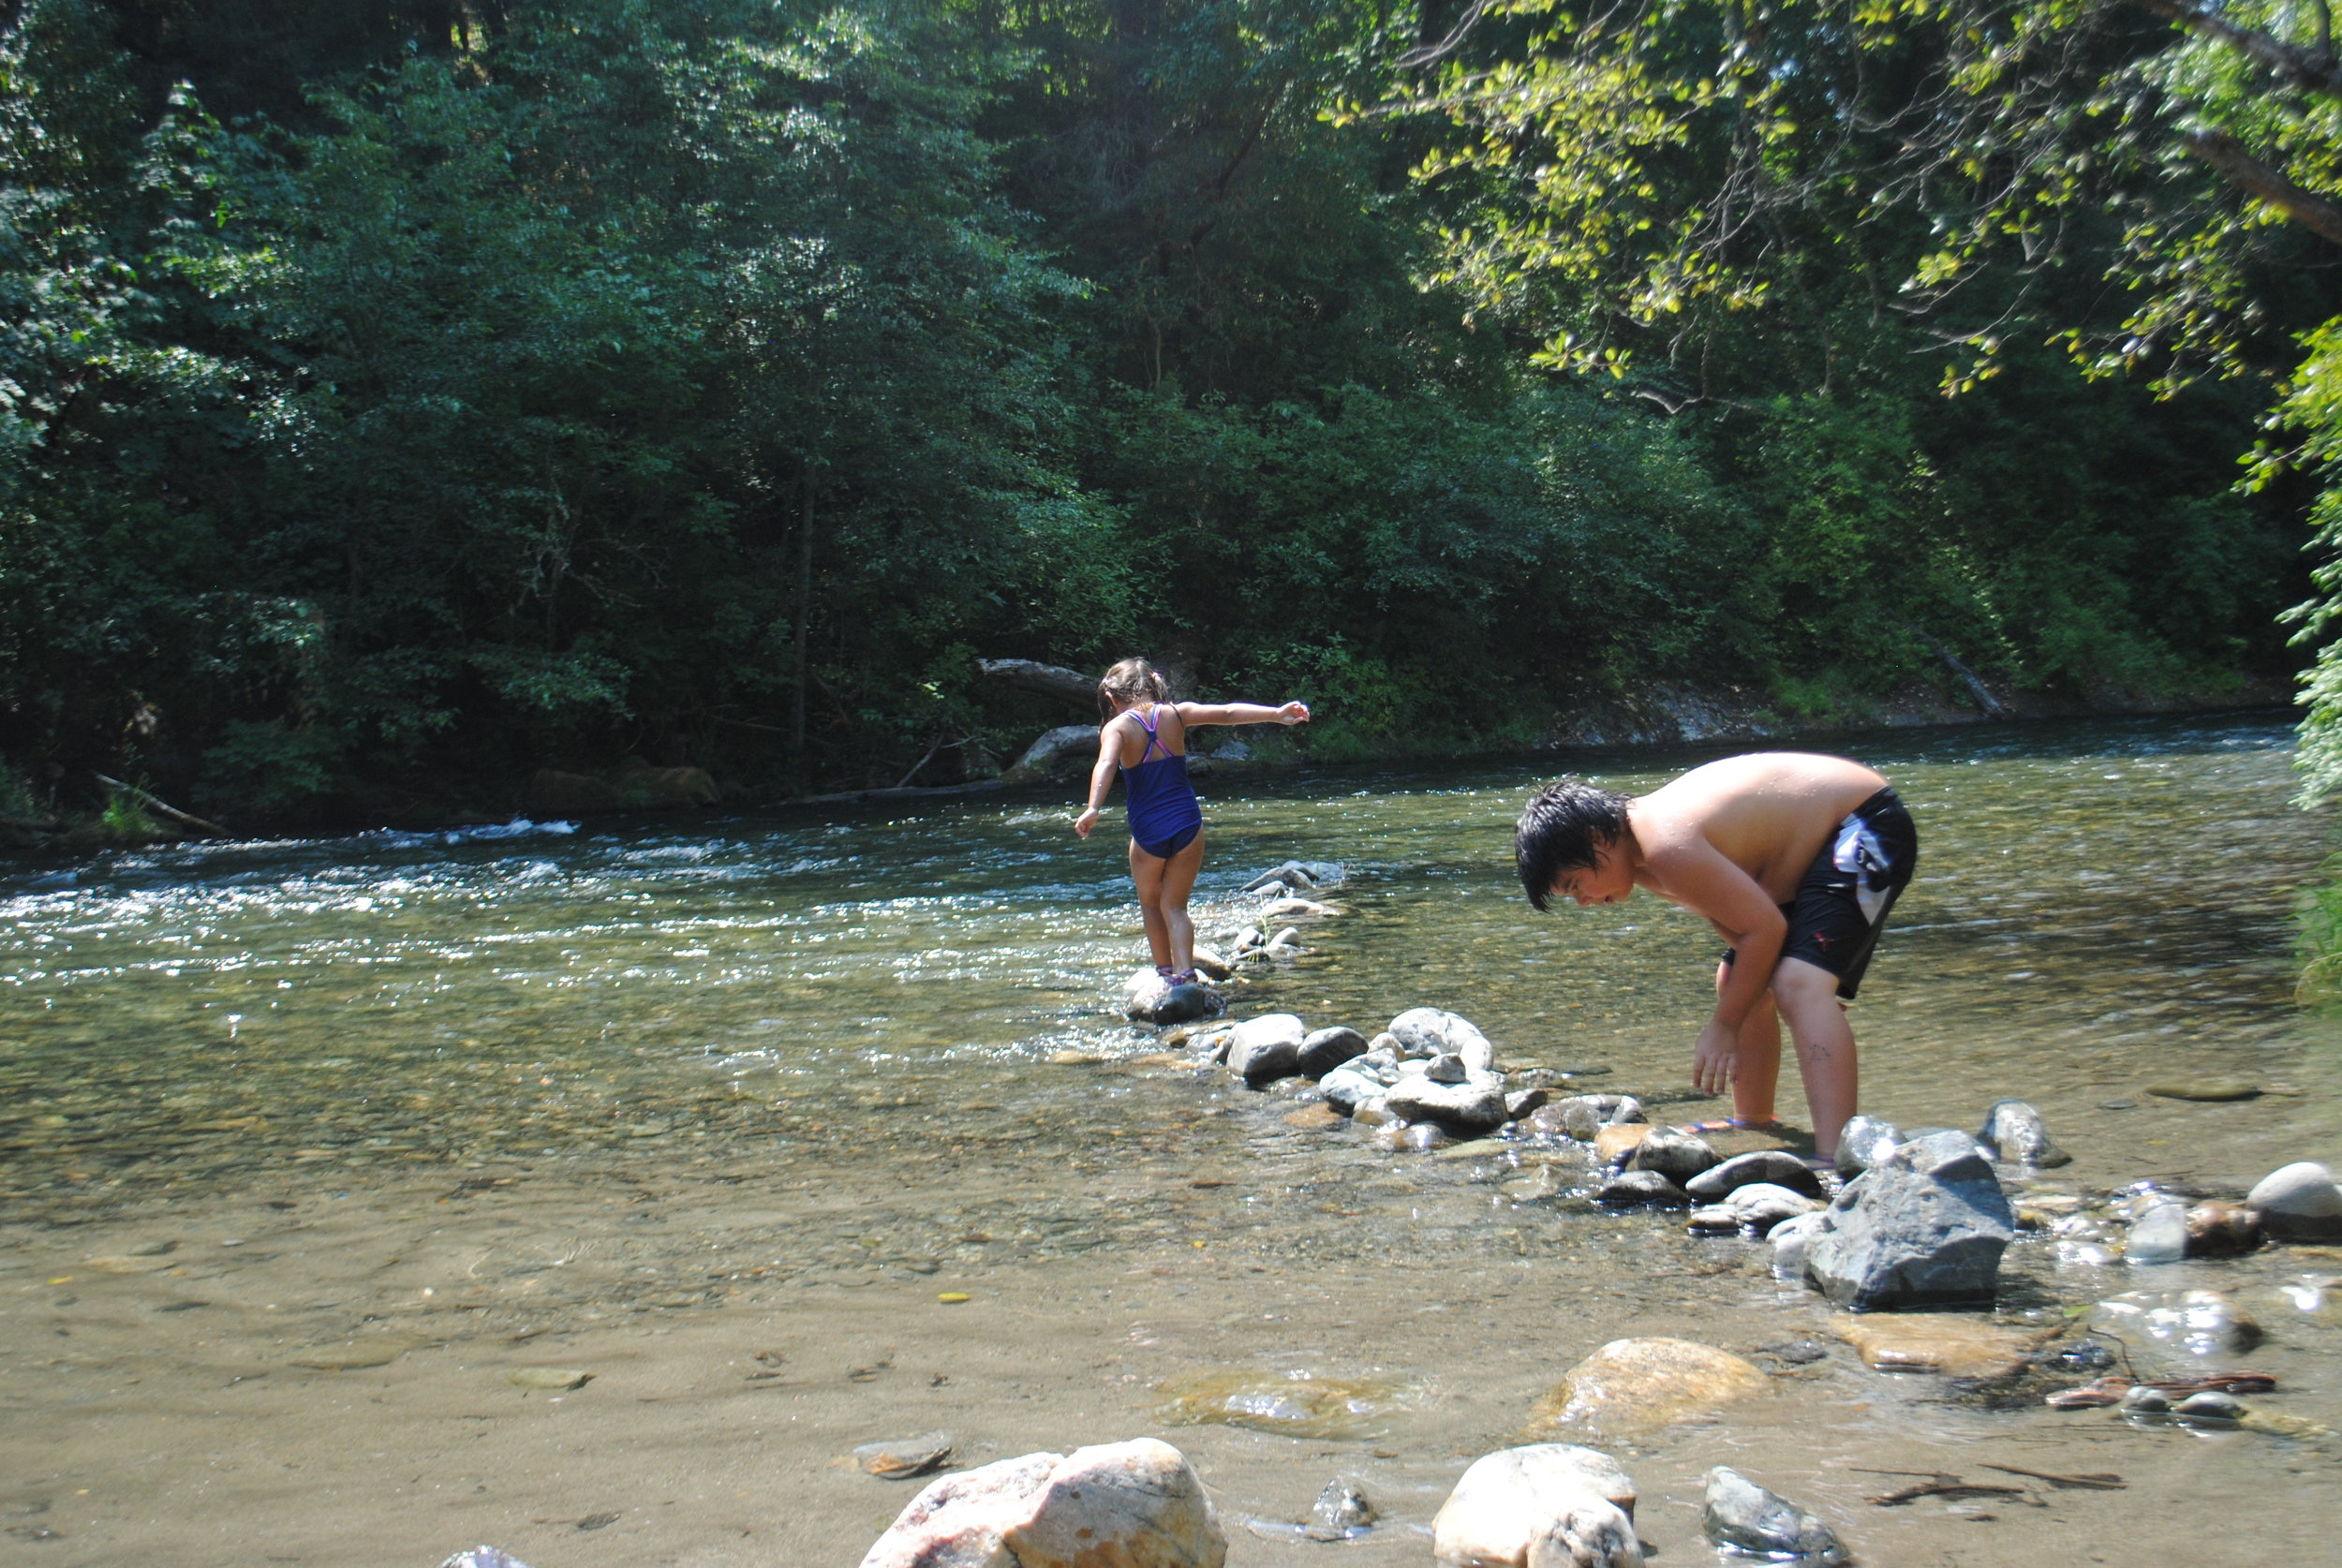 MCKEE BRIDGE - Swimming Hole - What to do in Southern Oregon - Outdoor Adventures - Fun with Kids - Applegate River